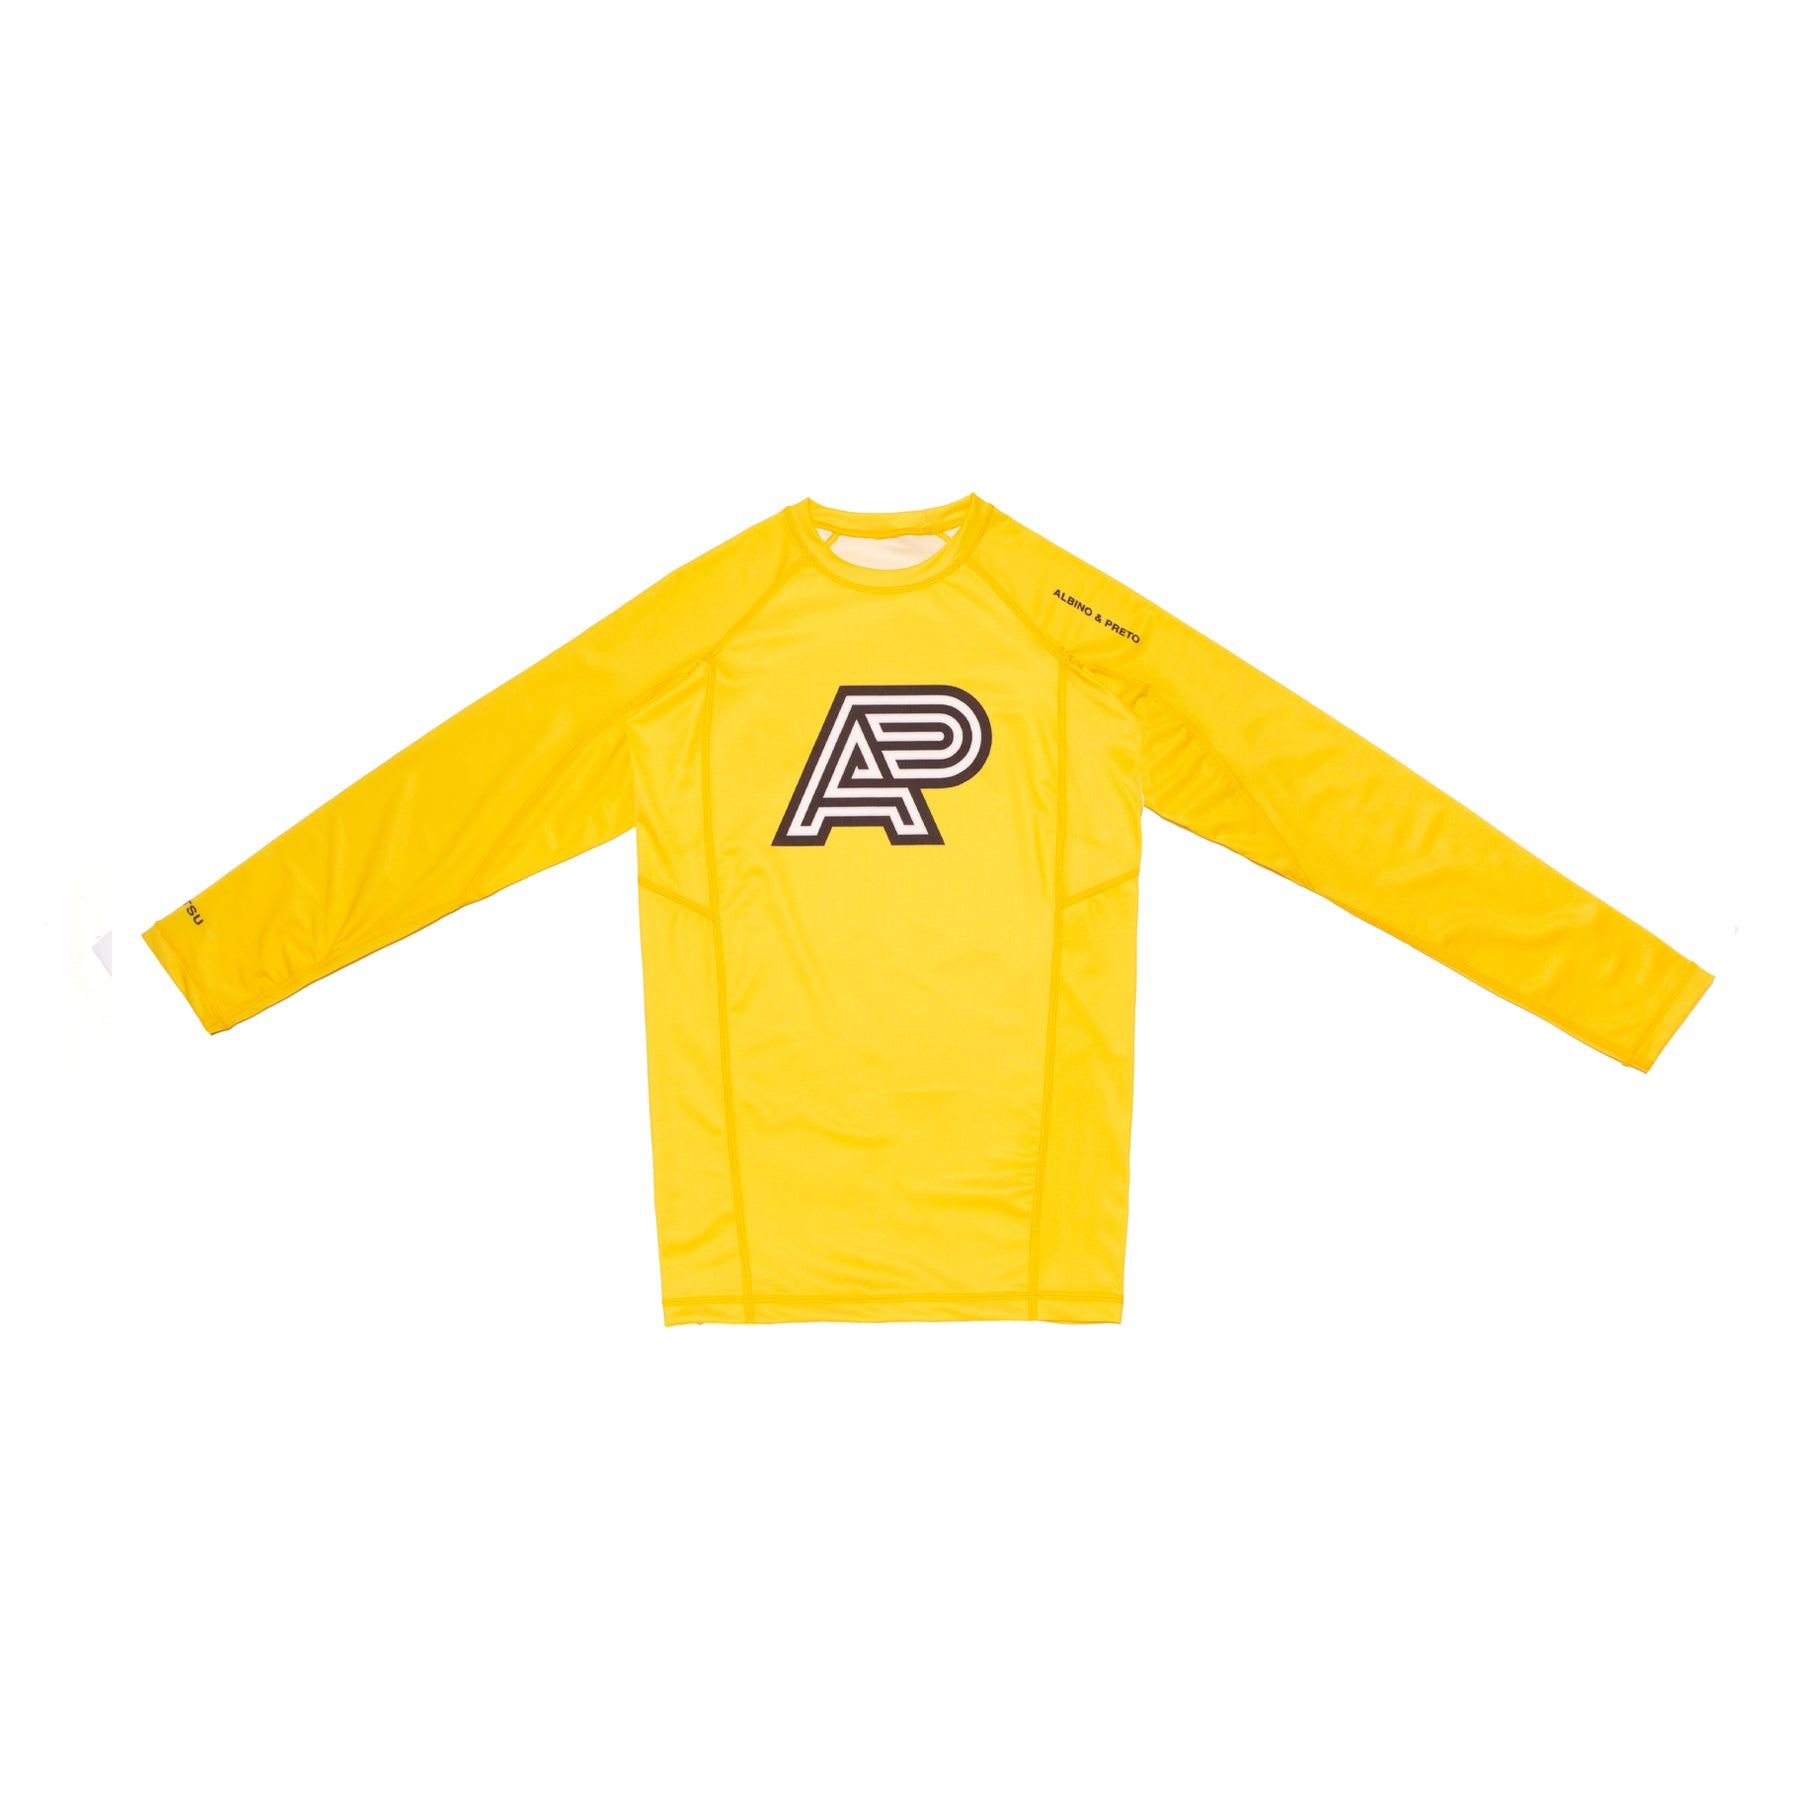 AP 19 CLASSIC RR YELLOW (FULFILLMENT)